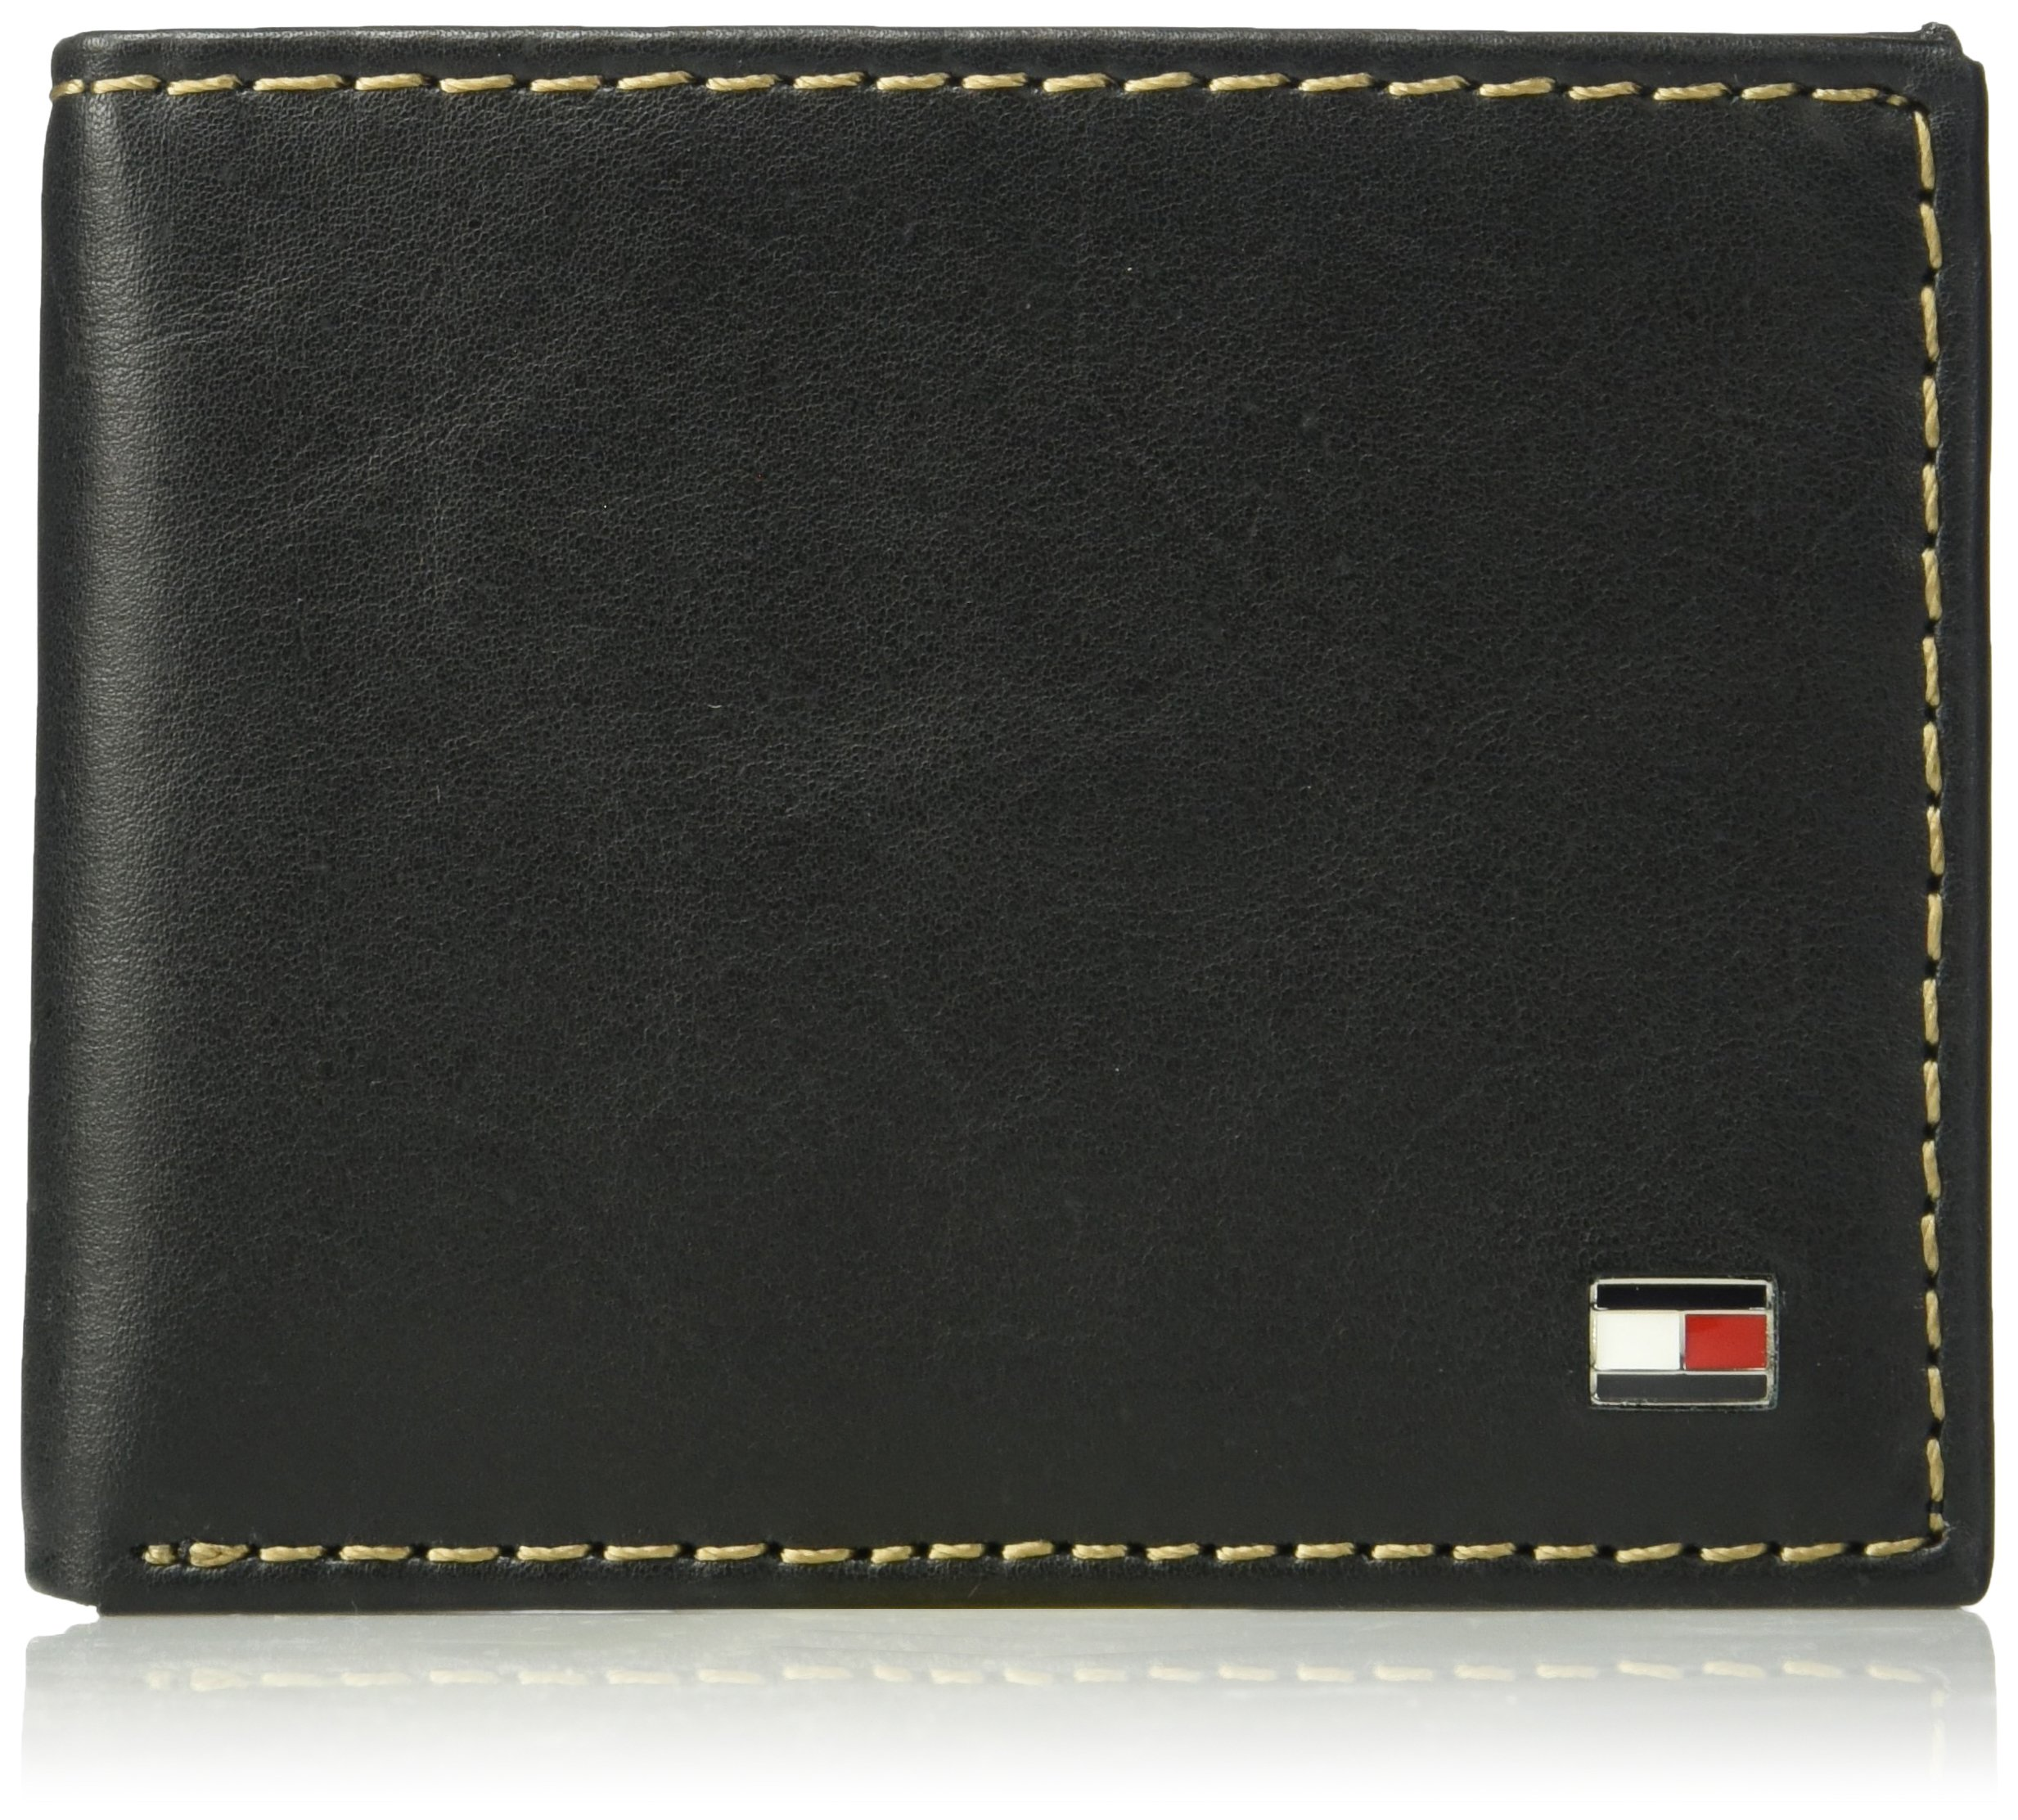 Tommy Hilfiger Men's Leather Wallet - RFID Blocking Slim Thin Bifold with Removable Card Holder and Gift Box, Logan - Black by Tommy Hilfiger